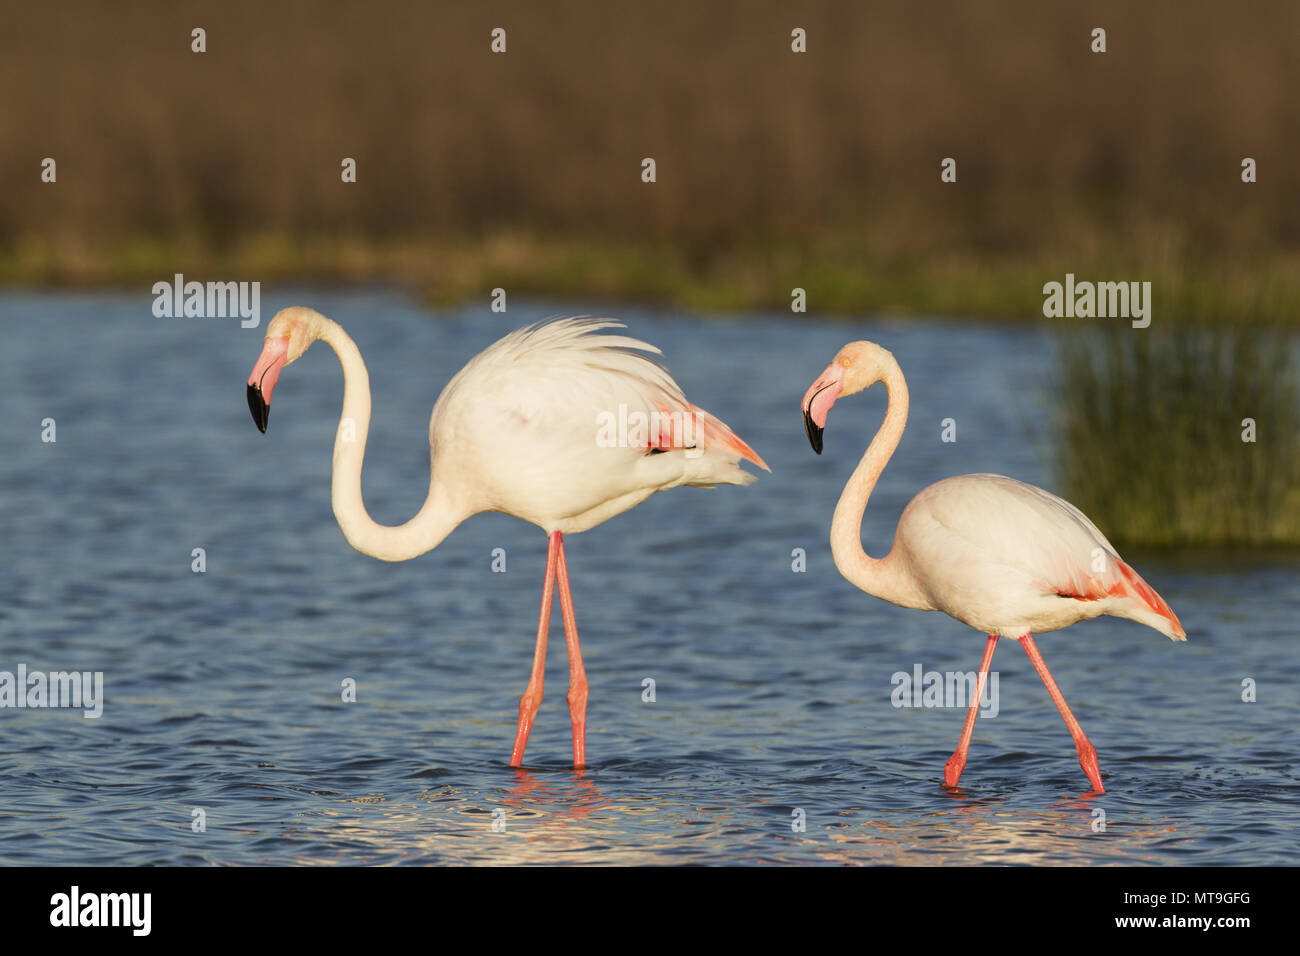 Greater Flamingo (Phoenicopterus roseus). Male on the left and female at the Laguna de Fuente de Piedra near the town of Antequera. This is the largest natural lake in Andalusia and Europe's only inland breeding ground for this species. Malaga province, Andalusia, Spain. - Stock Image